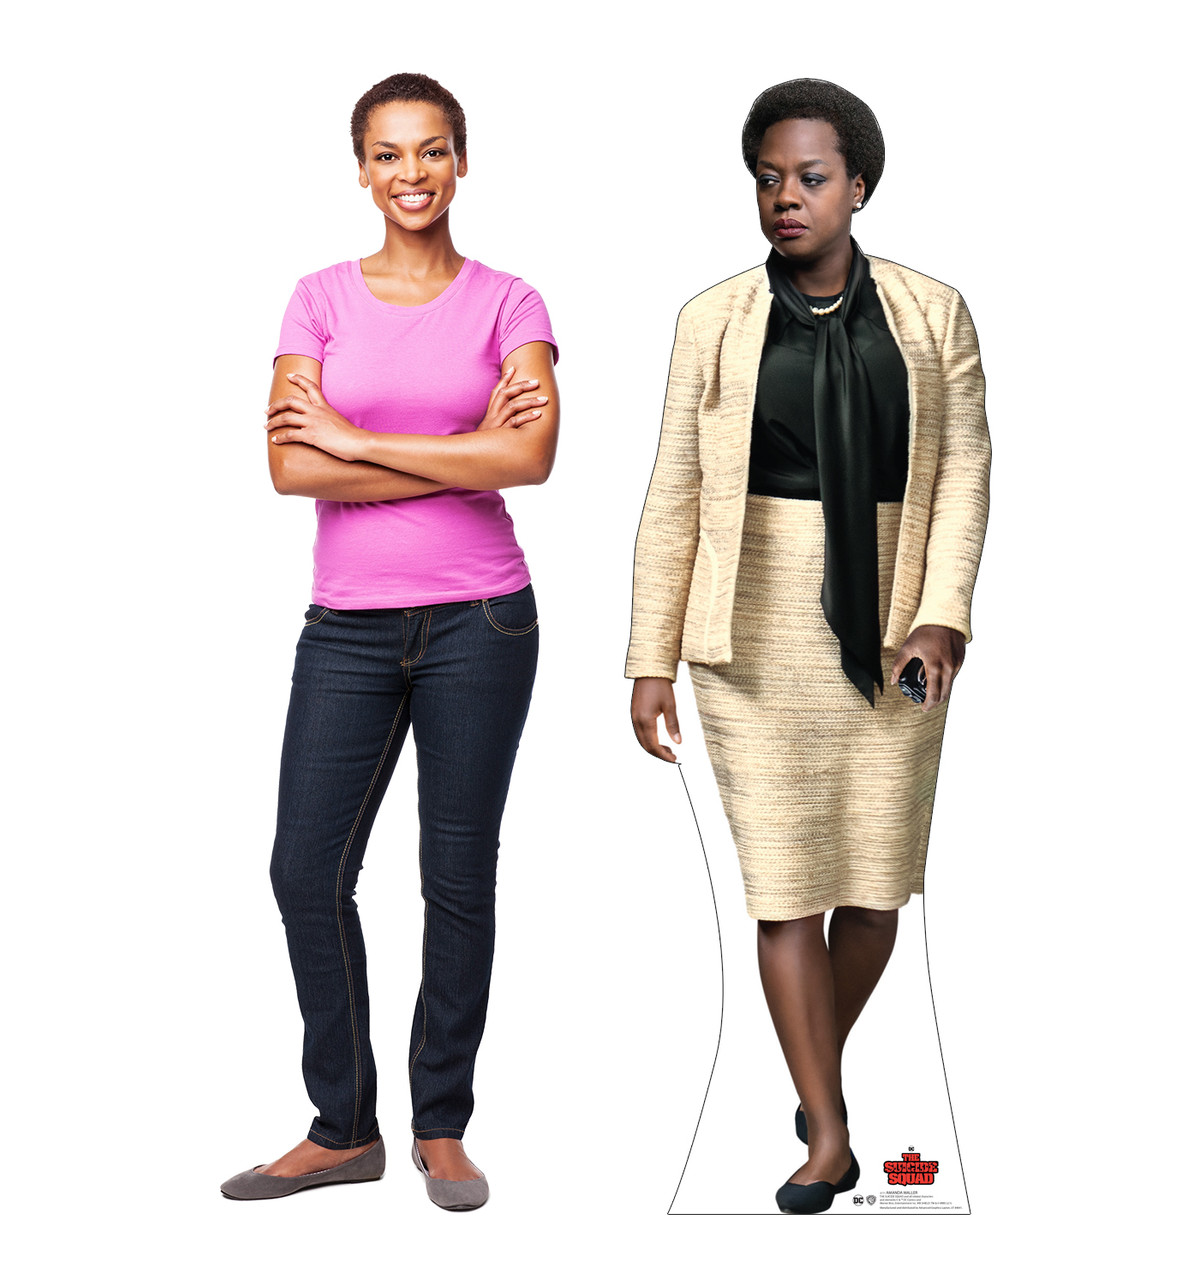 Life-size cardboard standee of Amanda Waller from Suicide Squad 2 with model.